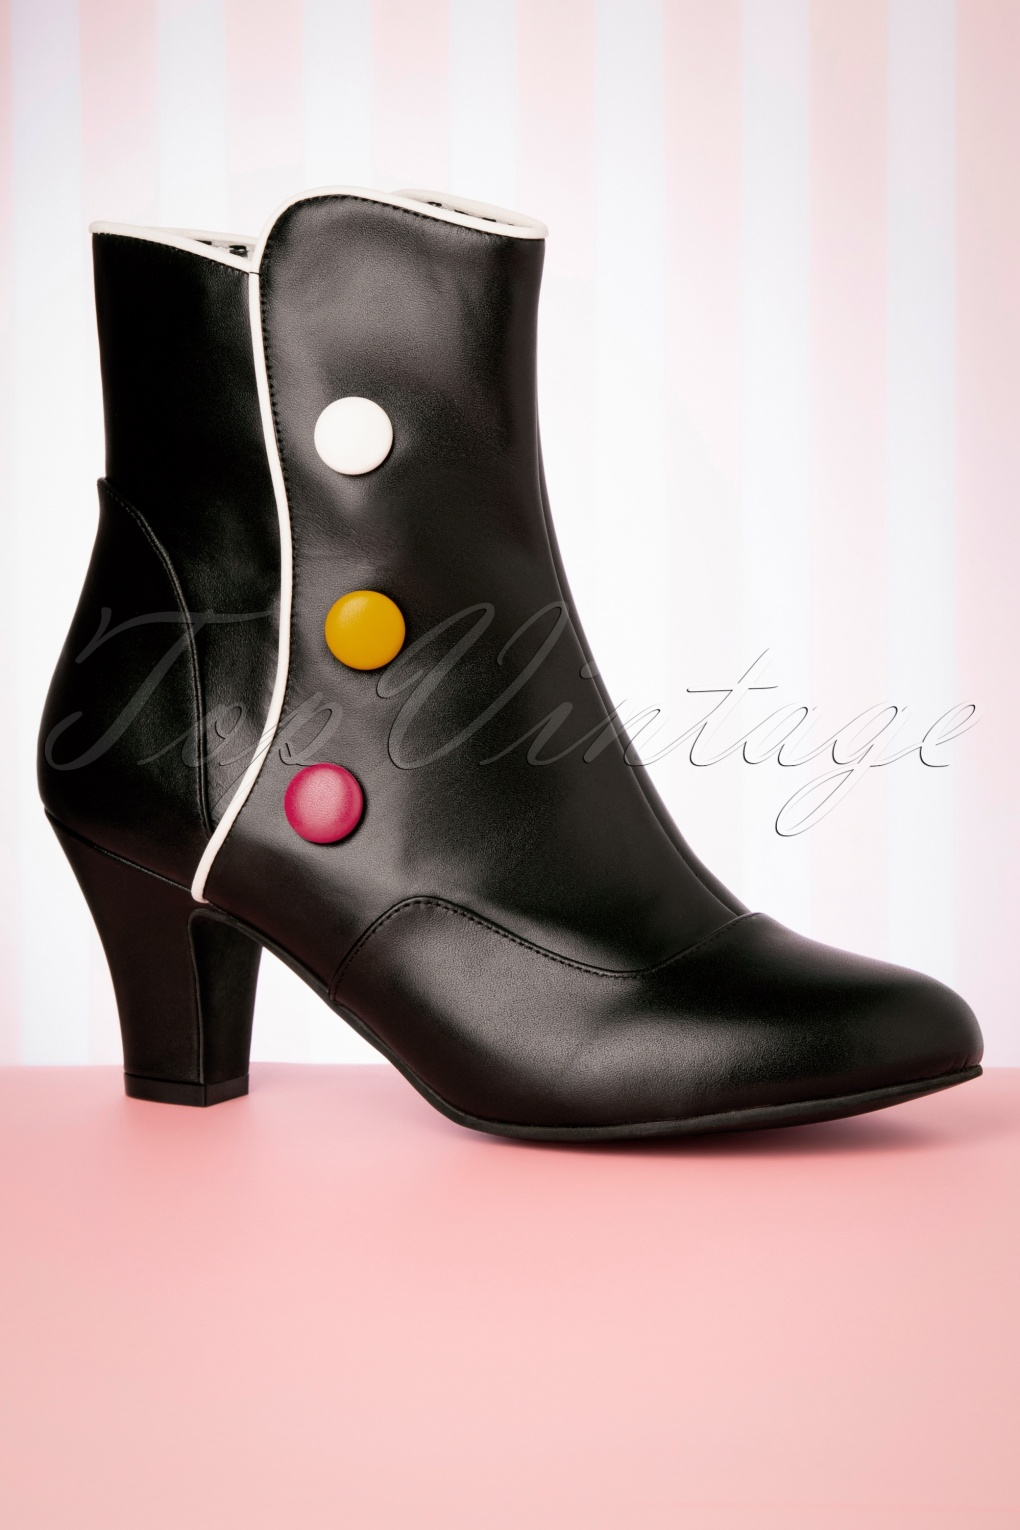 70s Shoes, Platforms, Boots, Heels | 1970s Shoes 50s Ava Smartie Ankle Booties in Black £183.72 AT vintagedancer.com